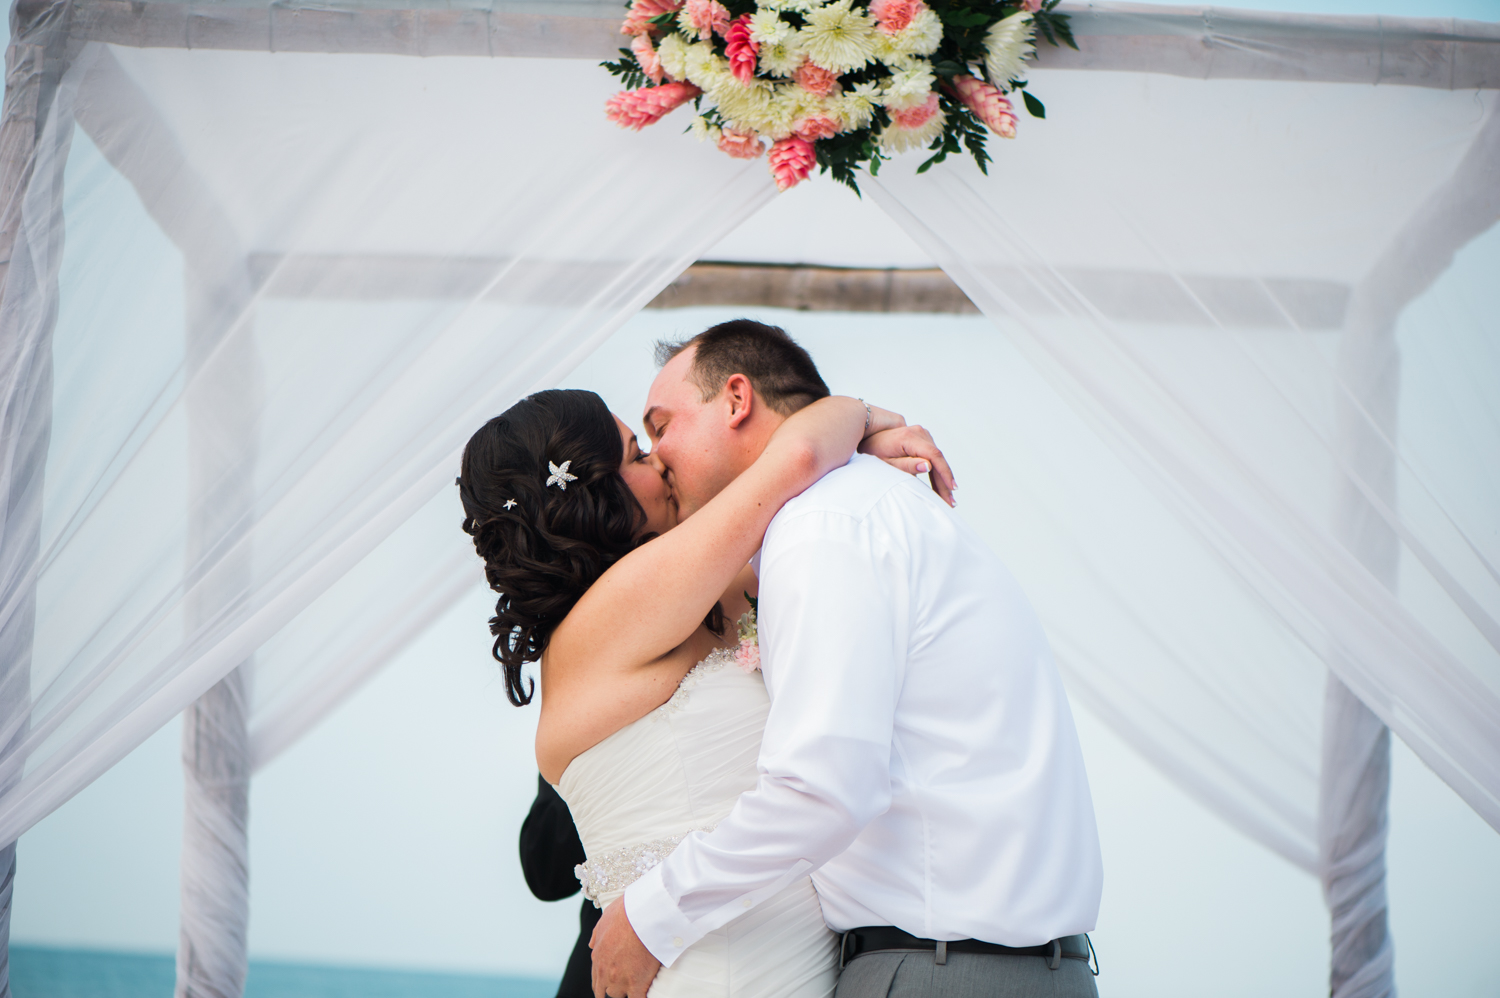 JadeandRyan-Montego-Bay-Jamaica-Wedding-Iberostar-Resort-Beach-59.jpg